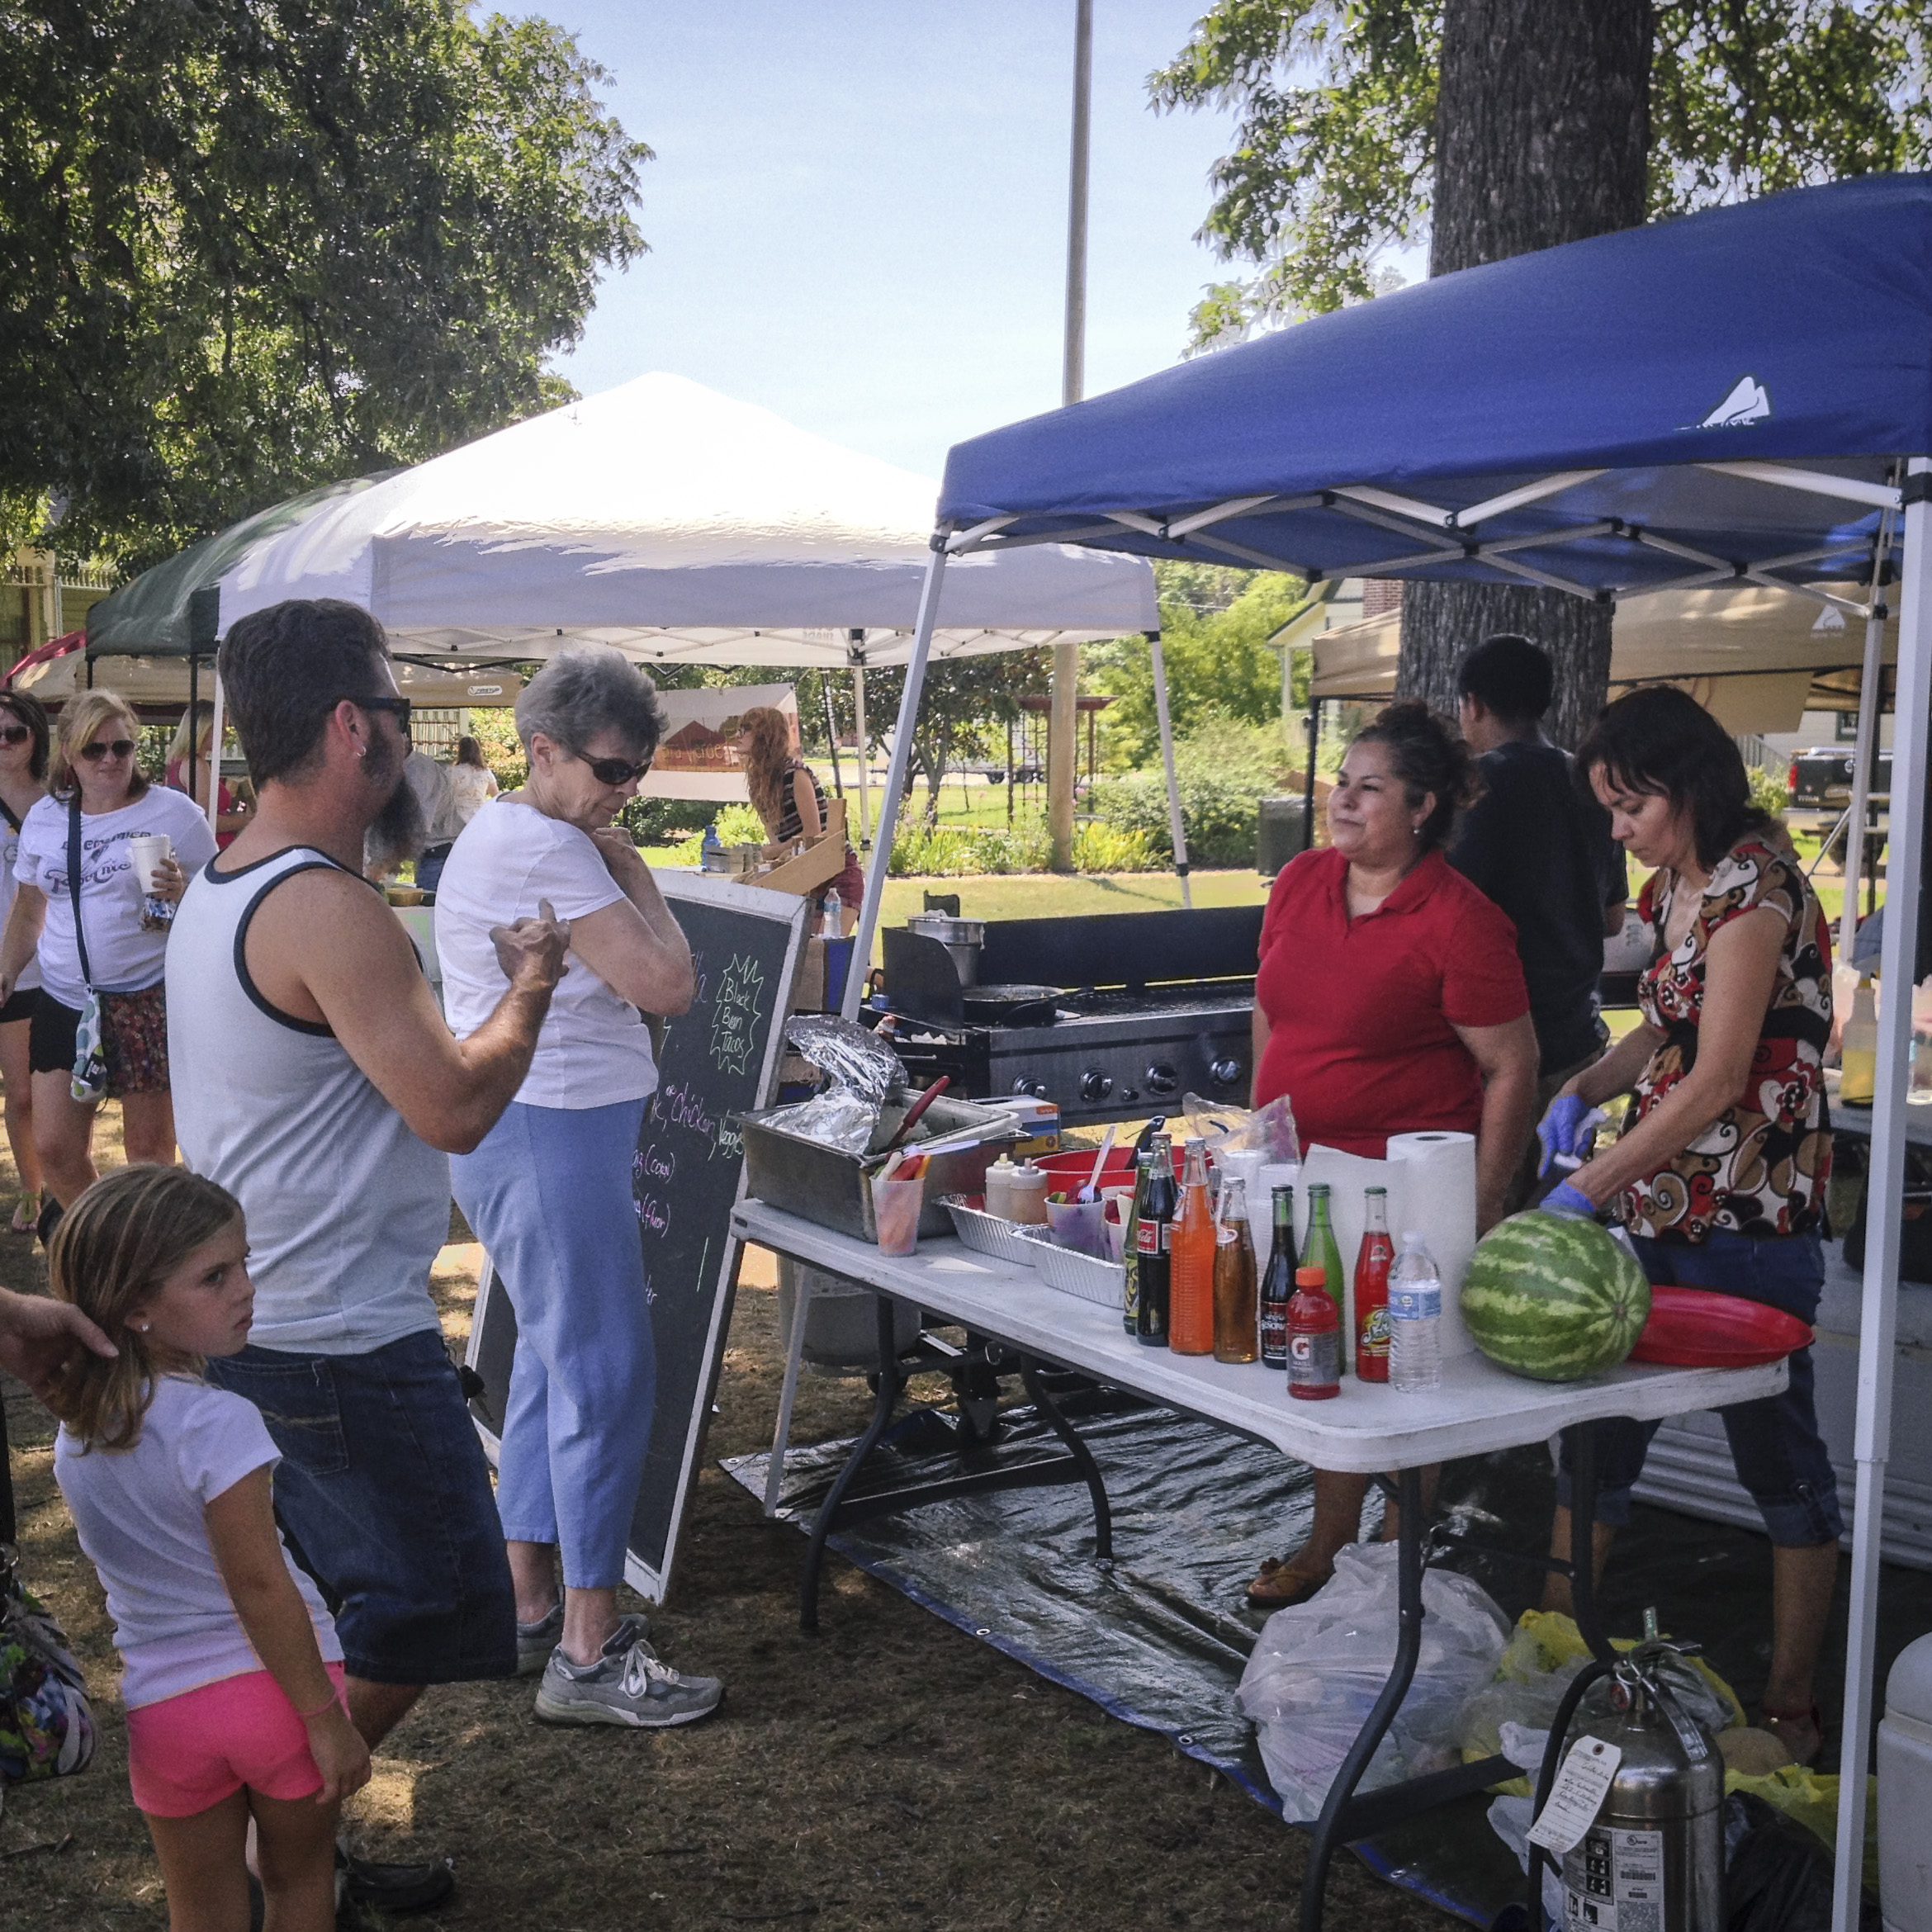 Our local taco faves, La Estrella, were once again out at the Community Market on Saturday. Catch 'em tomorrow at Truckin' Tuesday lunchtime at the downtown DCTA station.